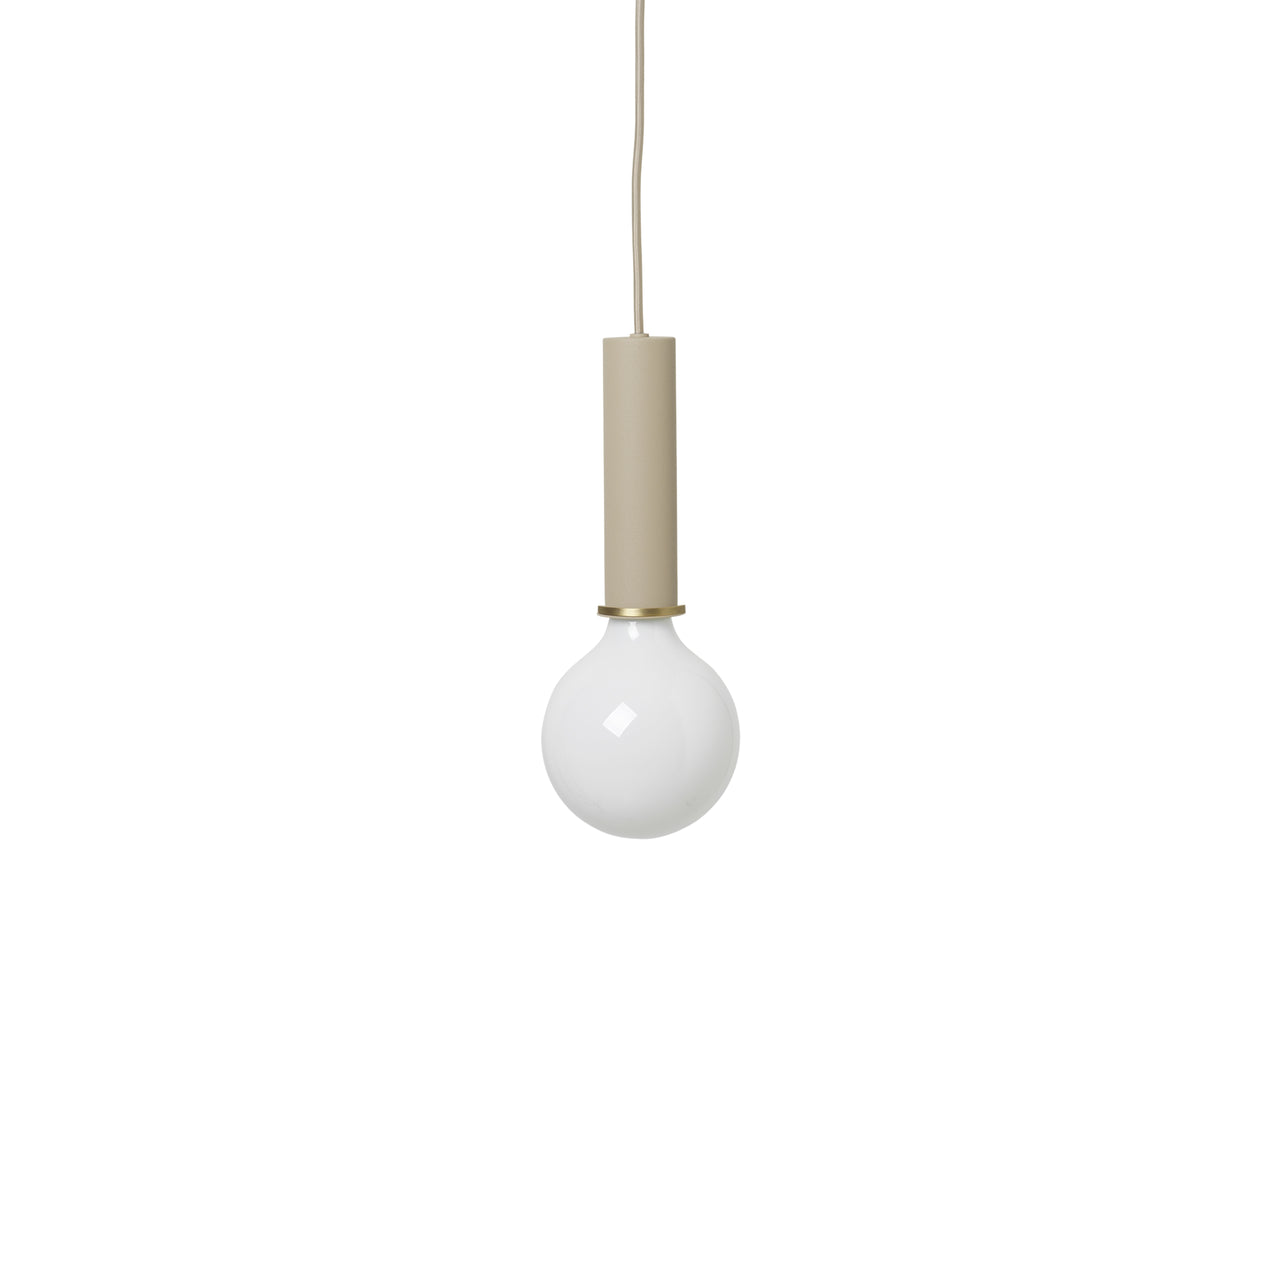 Collect Lighting: Pendant + High + Cashmere